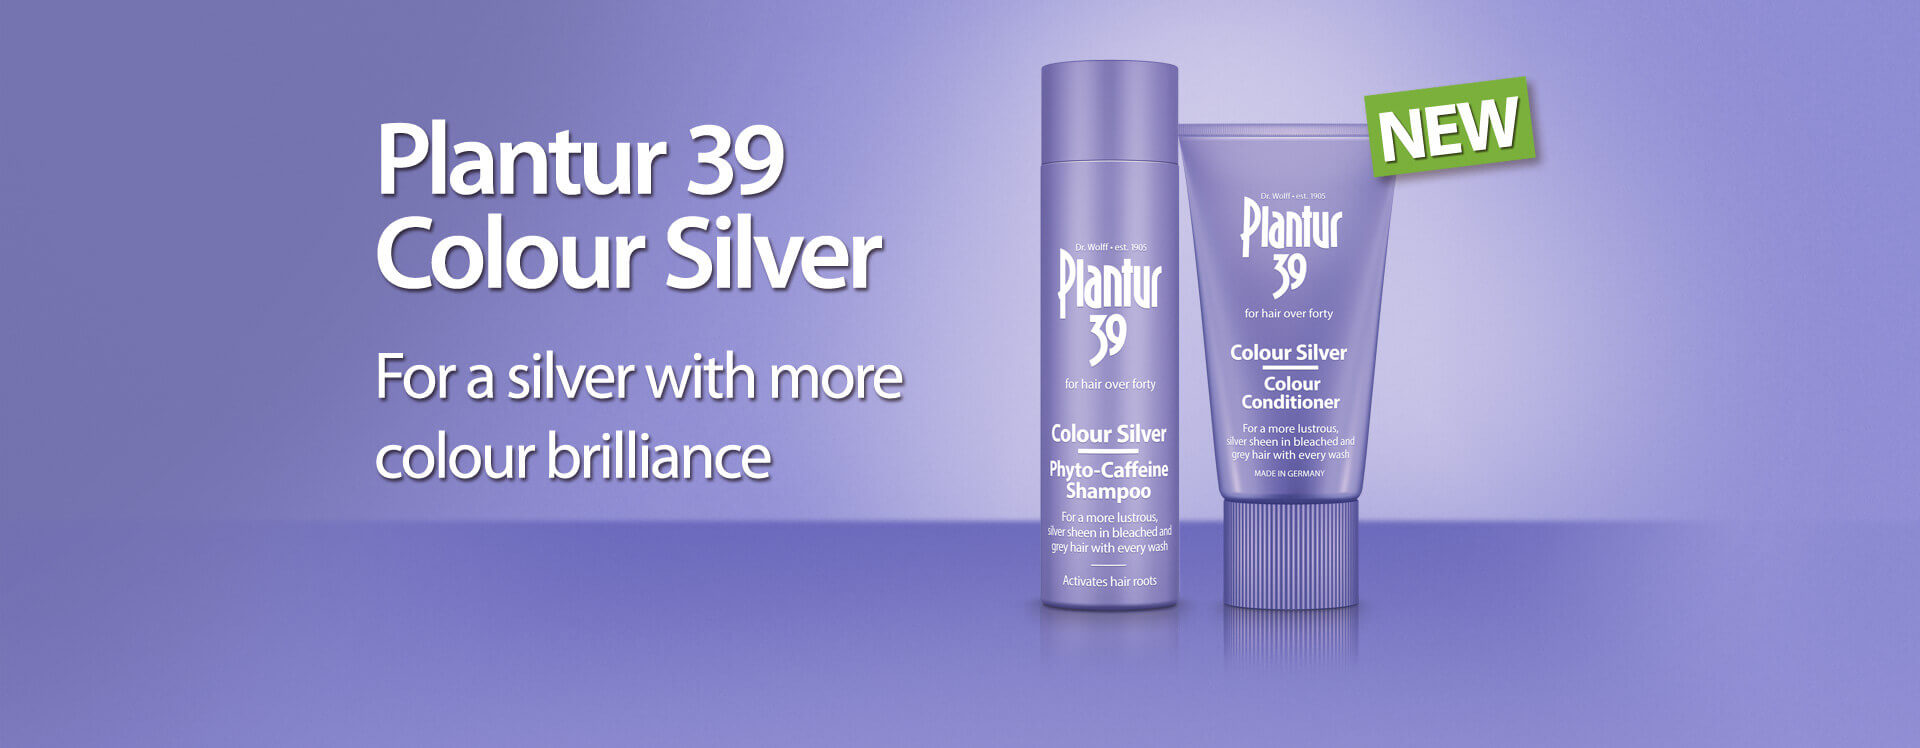 Plantur 39 Colour Silver for a silver with more colour brilliance